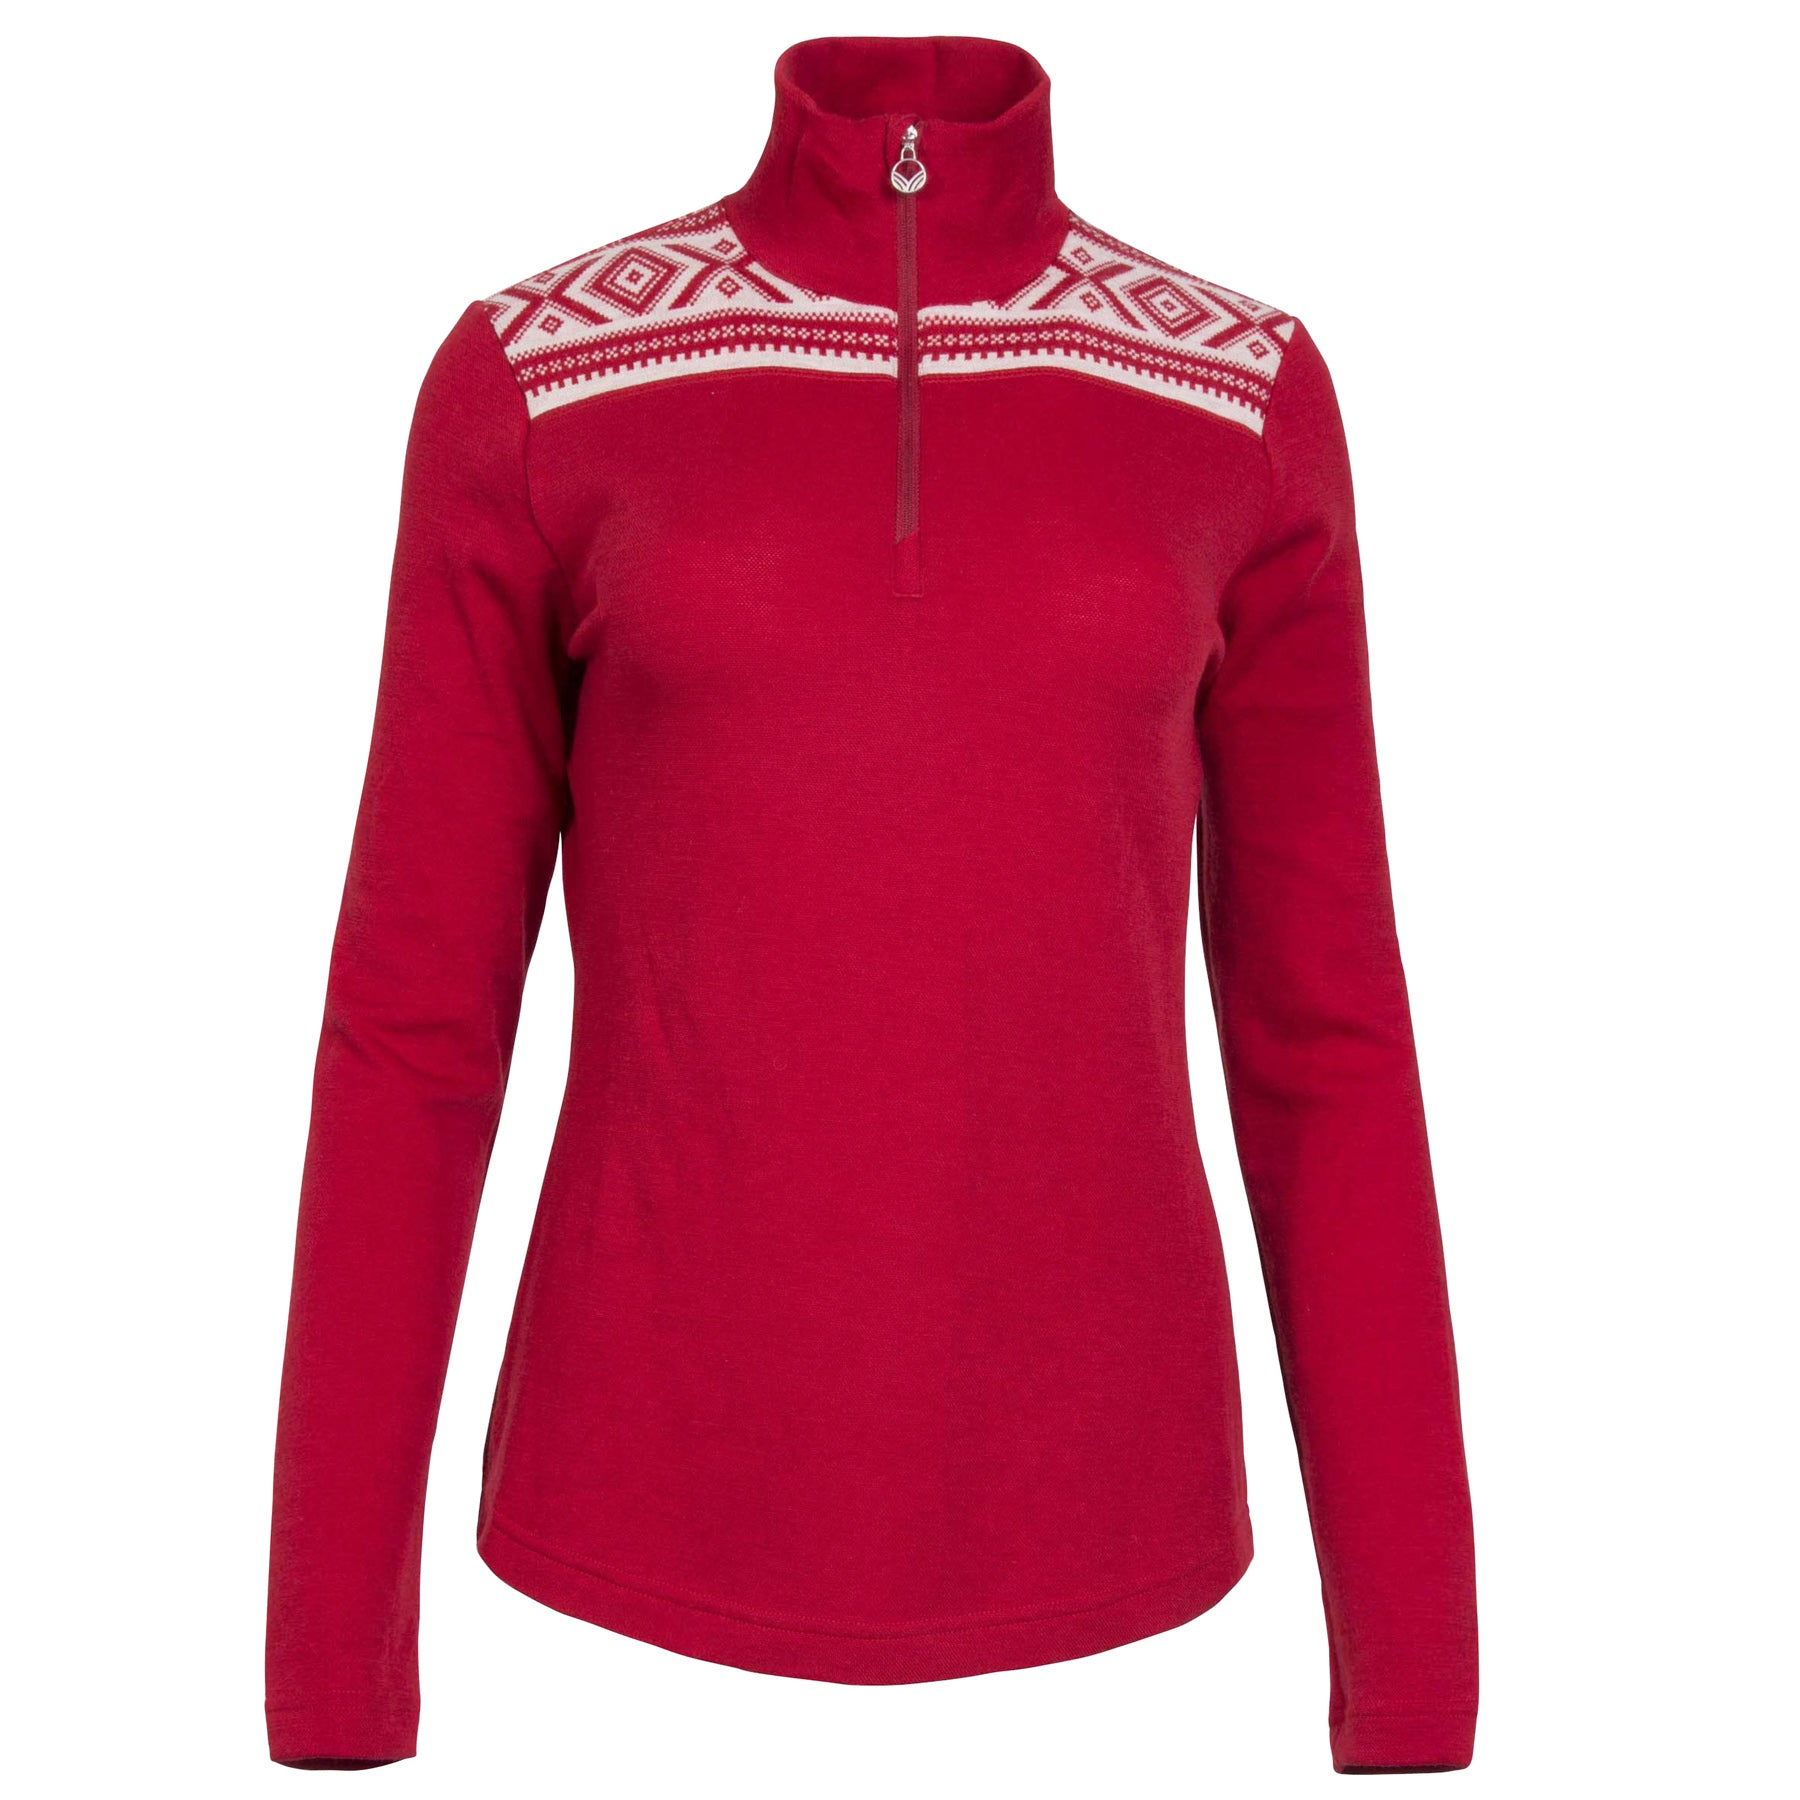 Dale of Norway - Cortina Basic Women's - Red